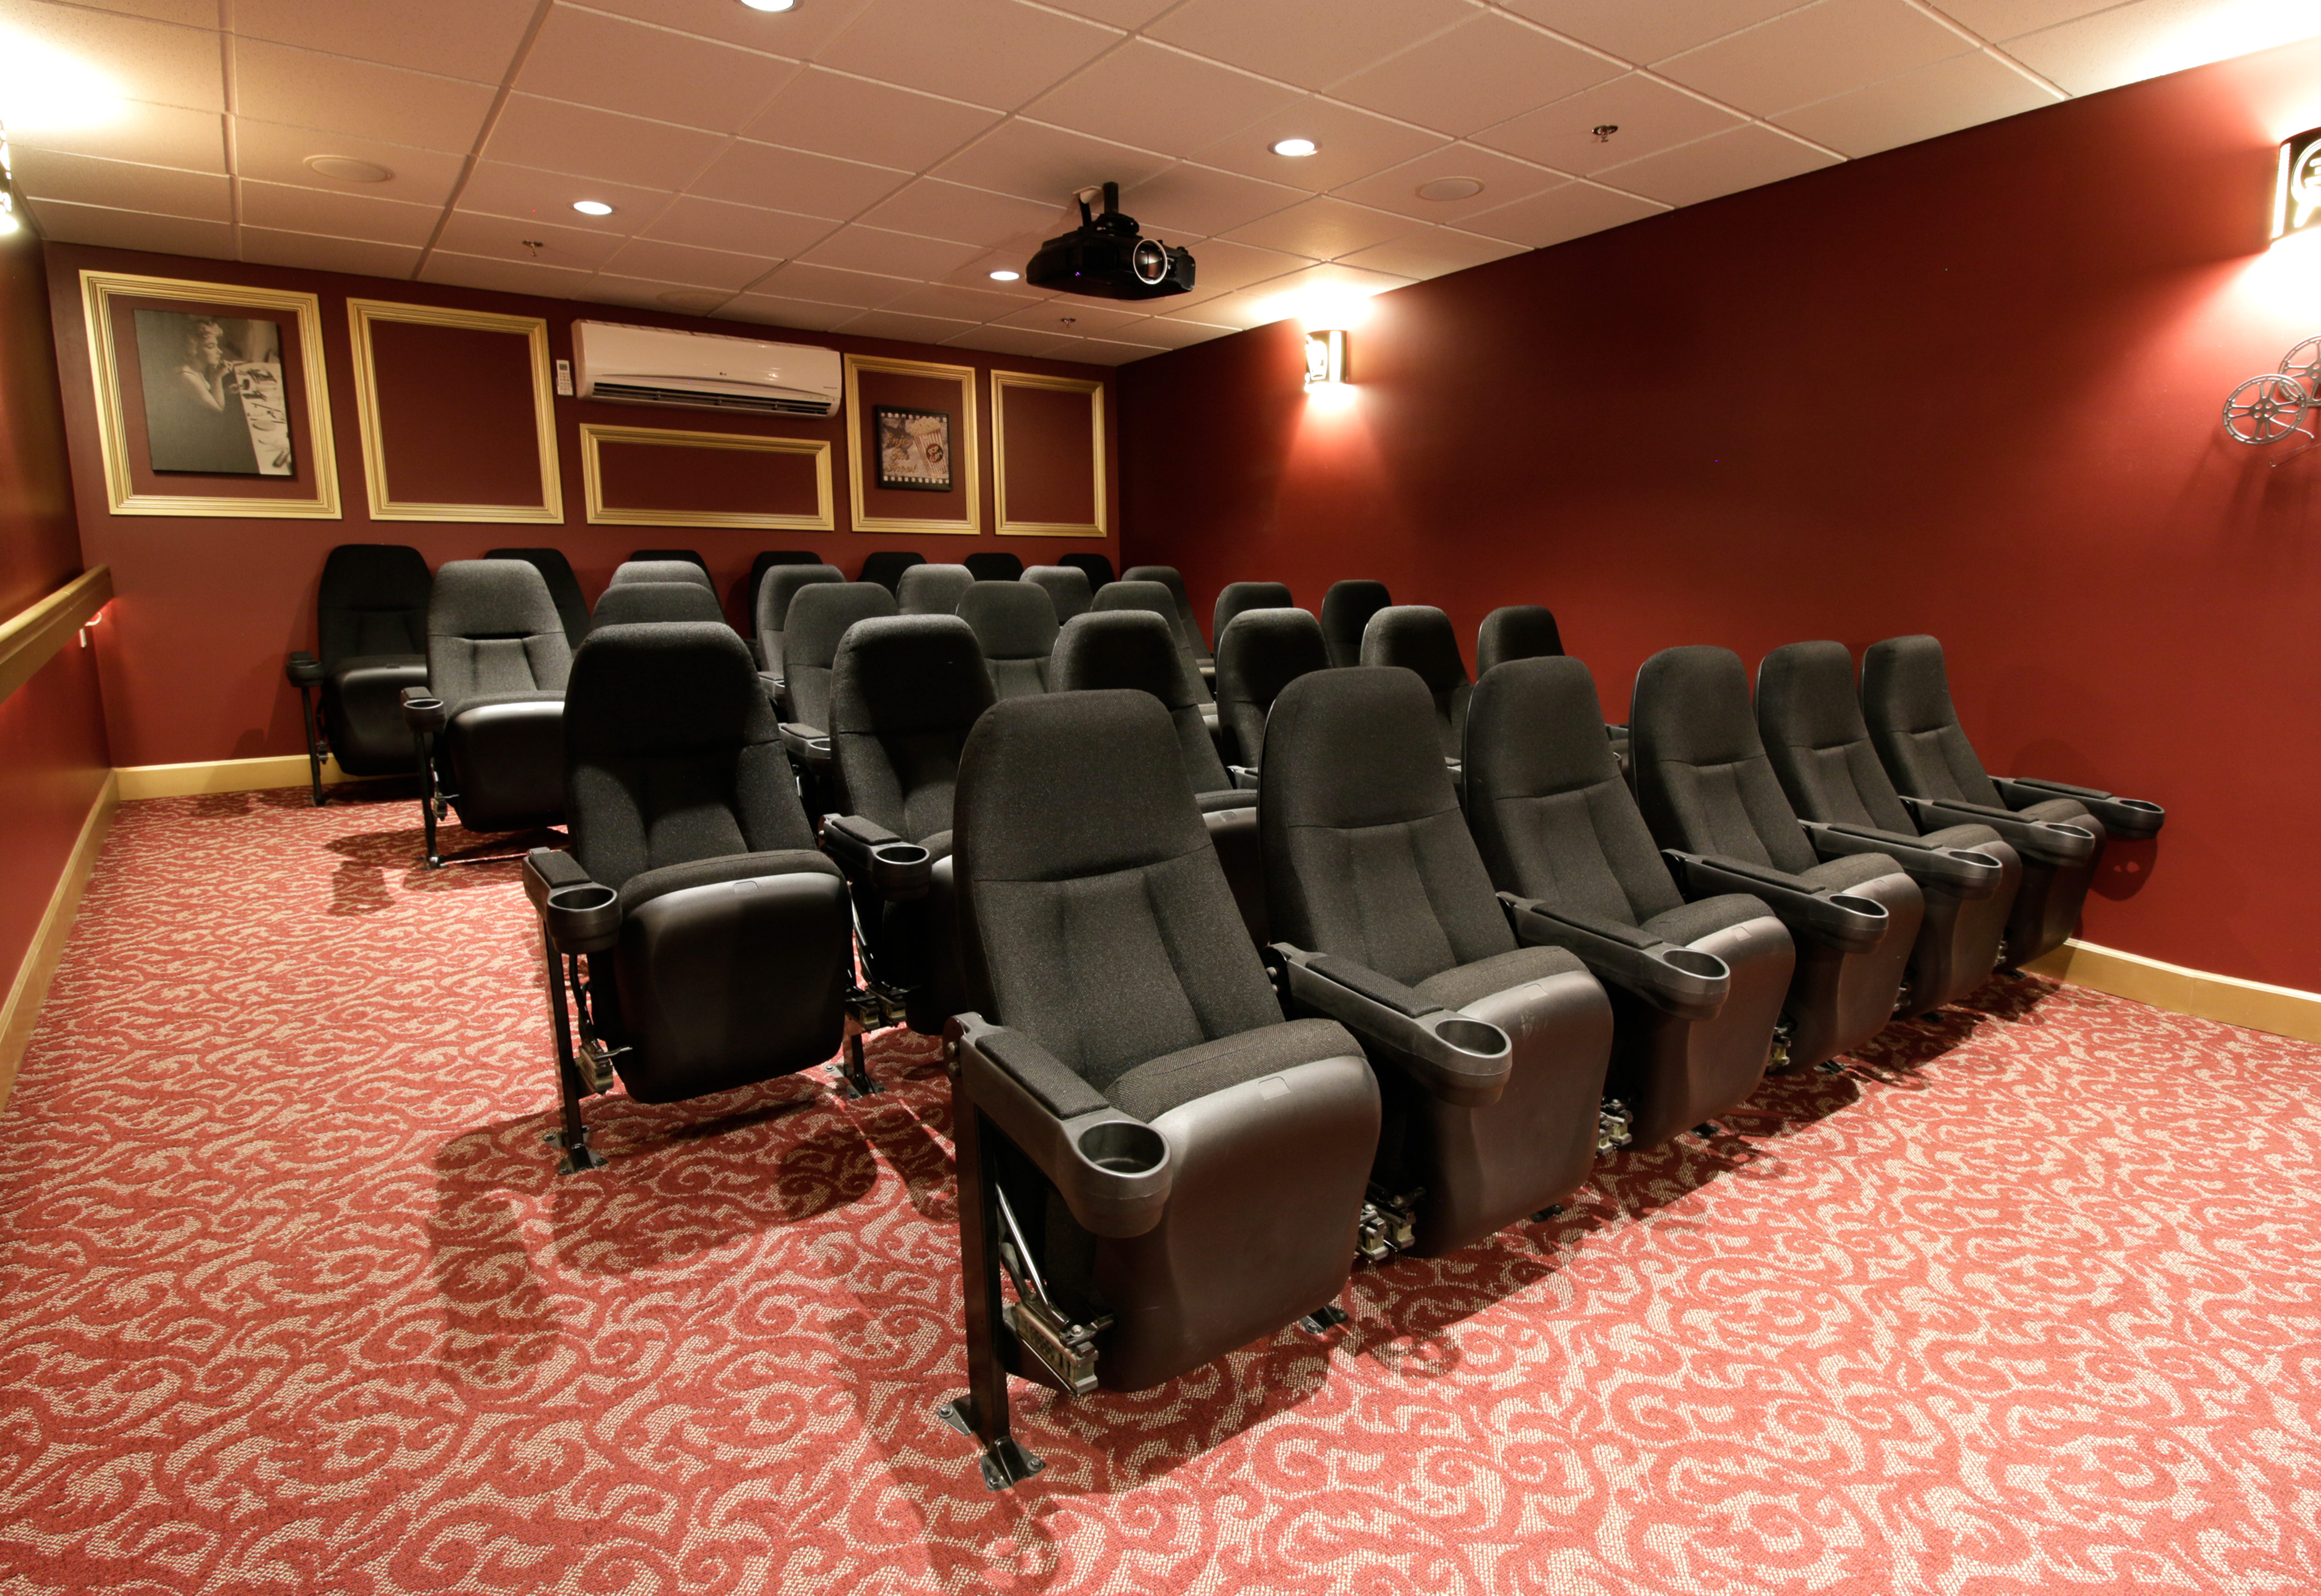 The theatre at Cherry Park Retirement Residence in Penticton